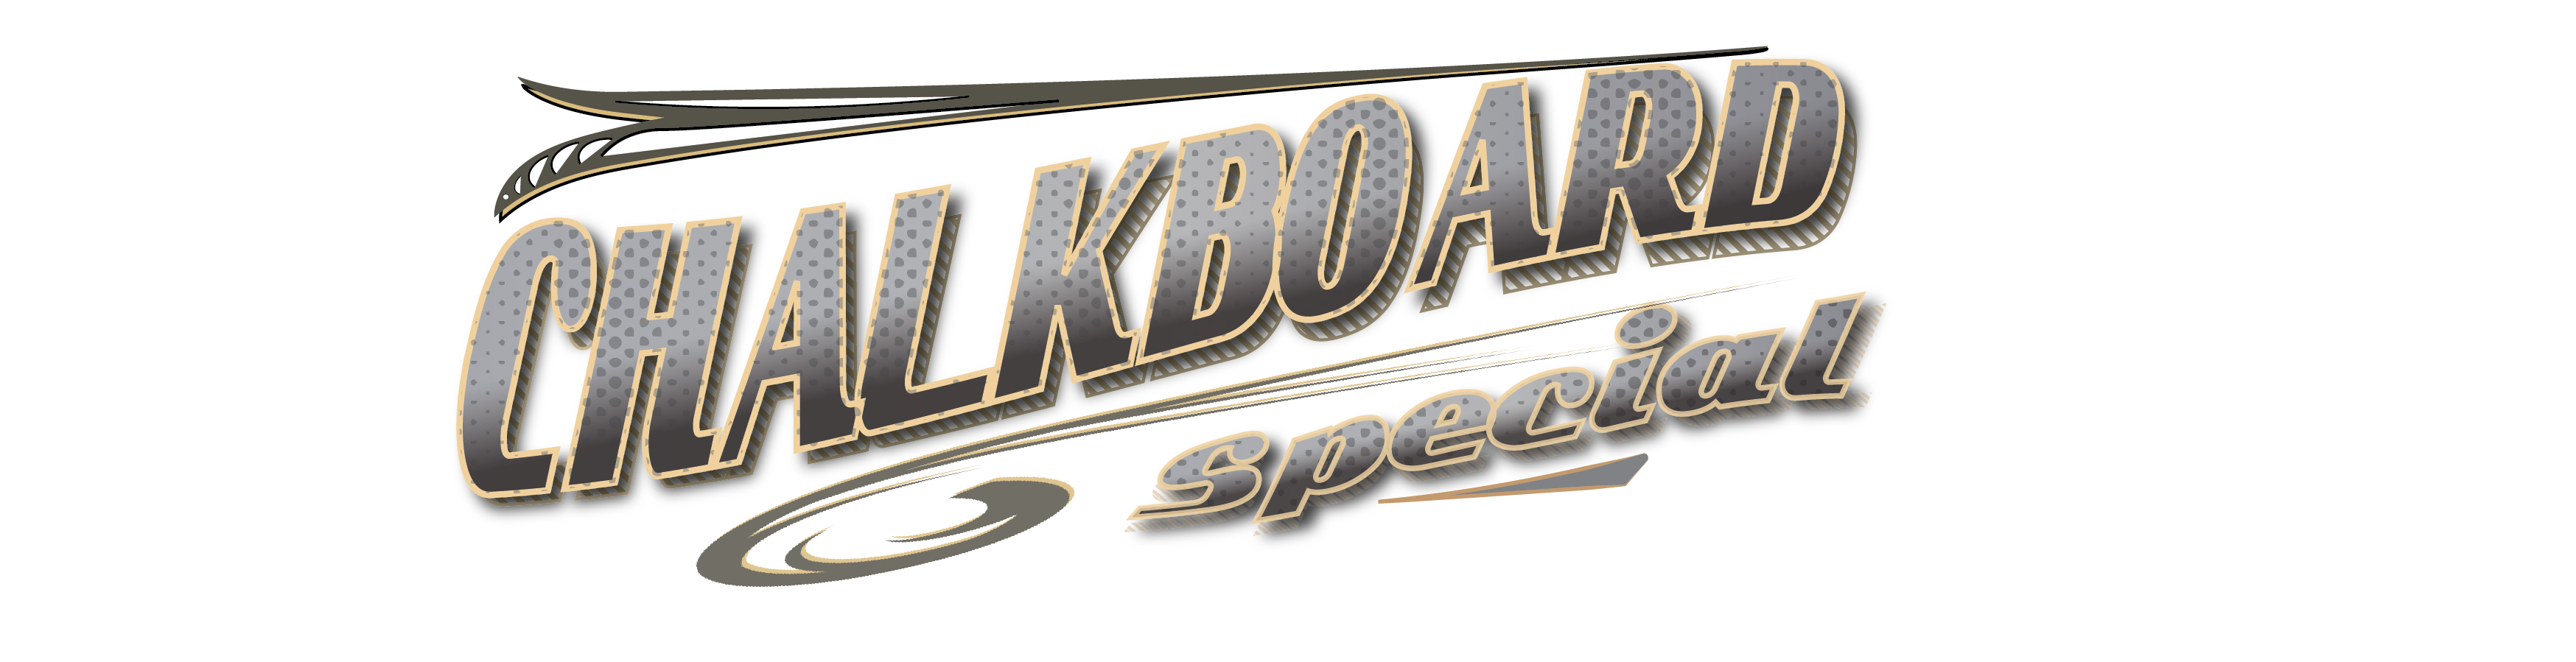 Spotlight on our partner: The Chalk Board Special Food Truck